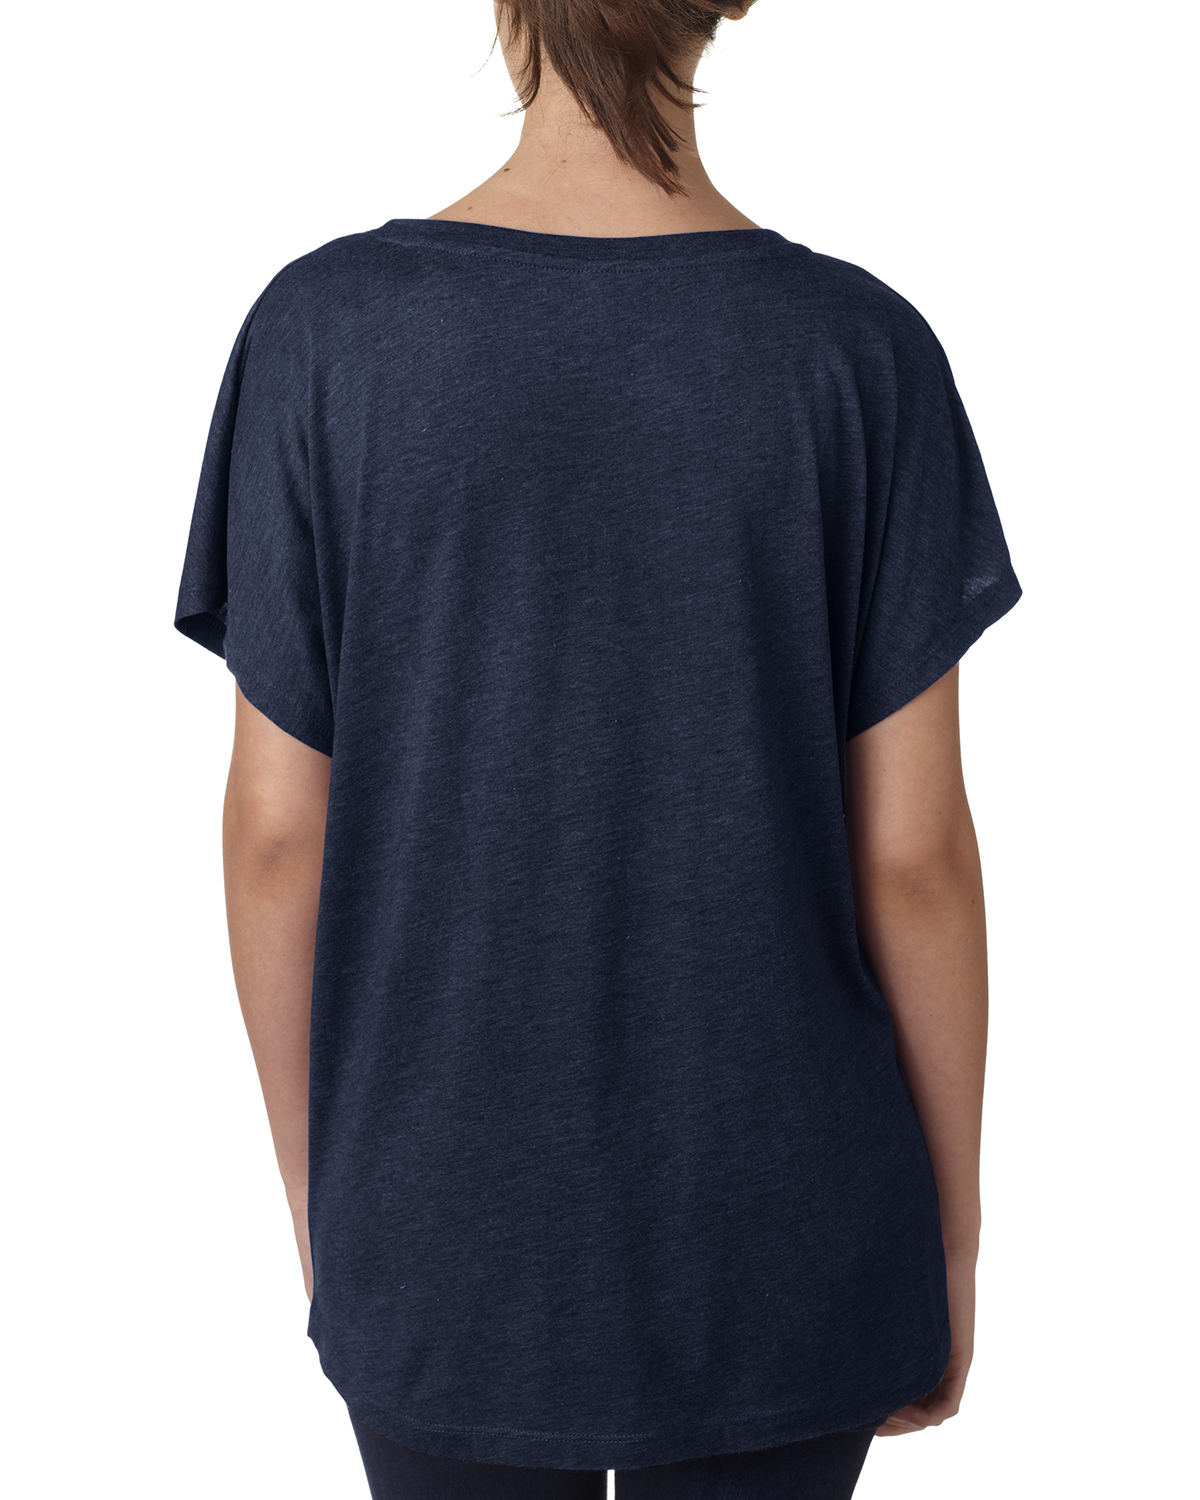 NEW-Next-Level-Junior-Fit-Triblend-Dolman-Sleeve-Relexed-Fit-T-Shirt-B-6760 thumbnail 33